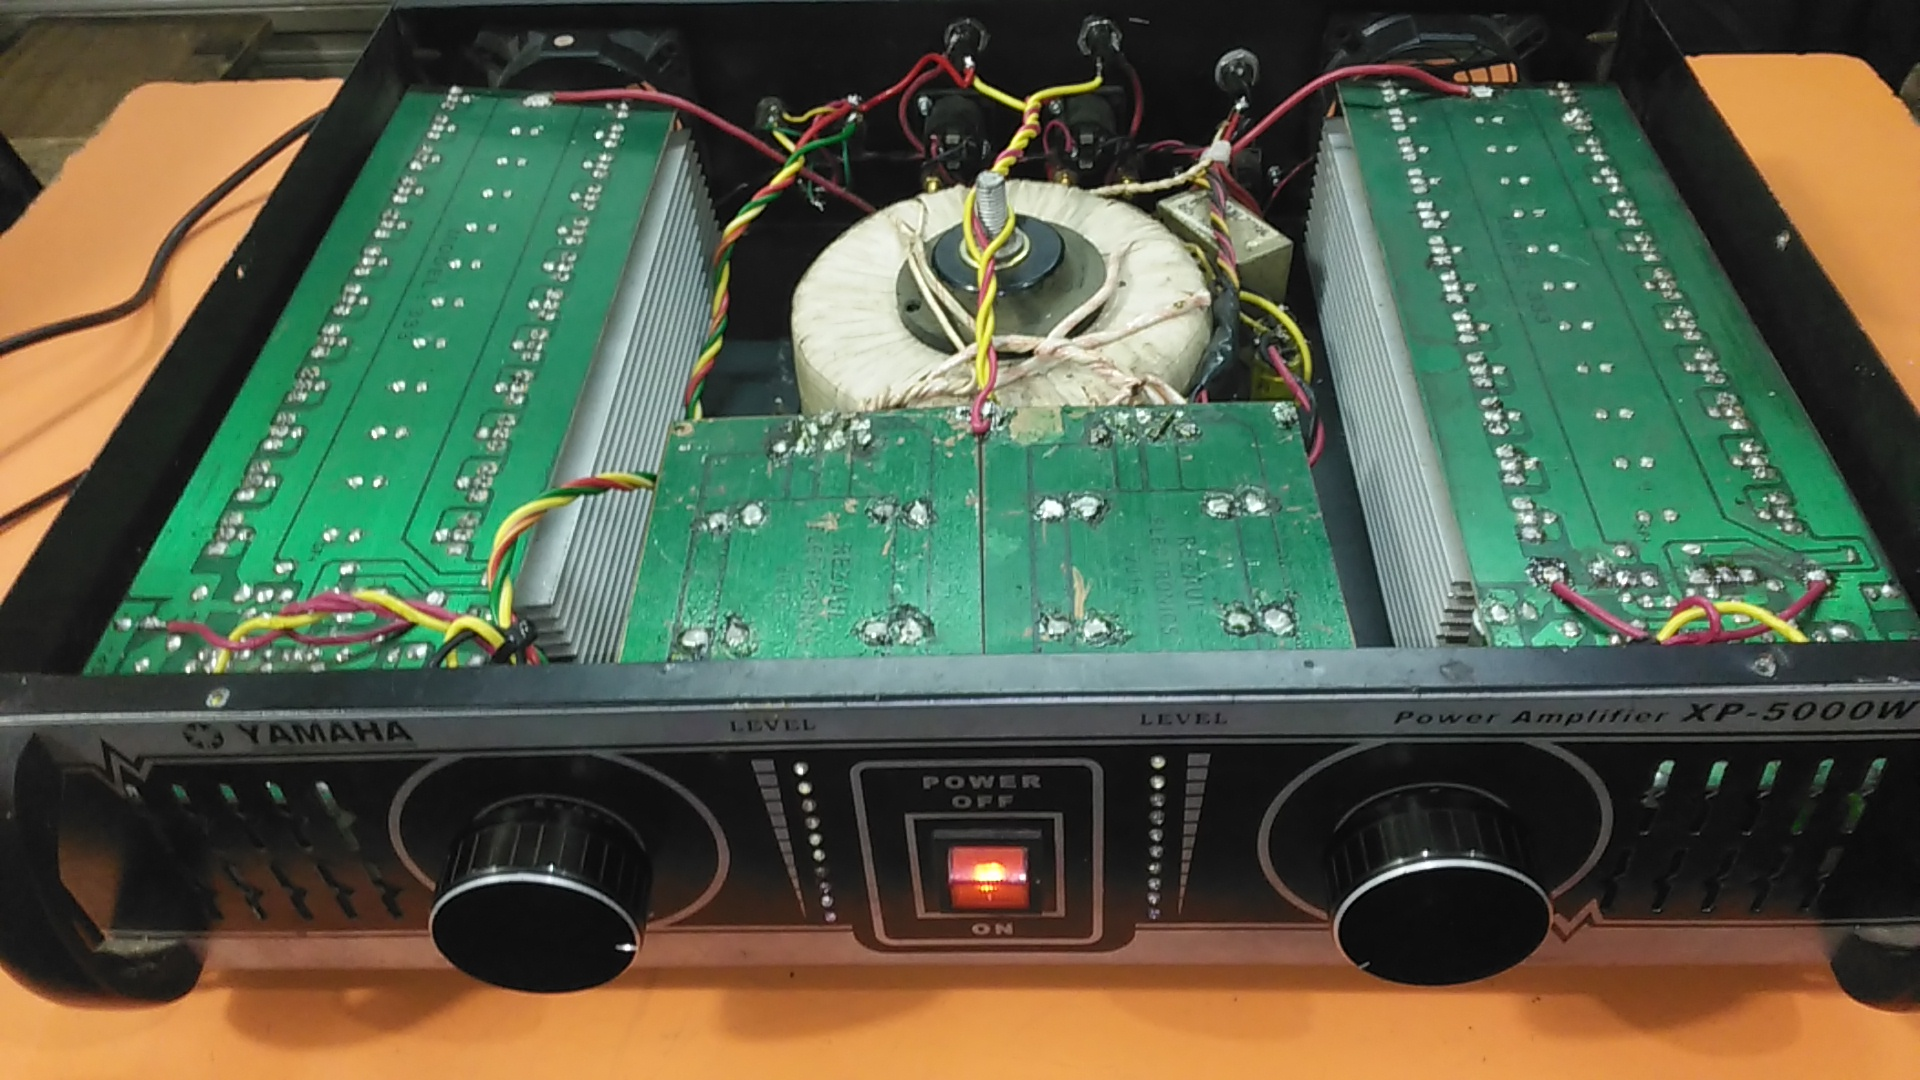 How To Make An Amplifier 2000 Watts Electronics Help Care